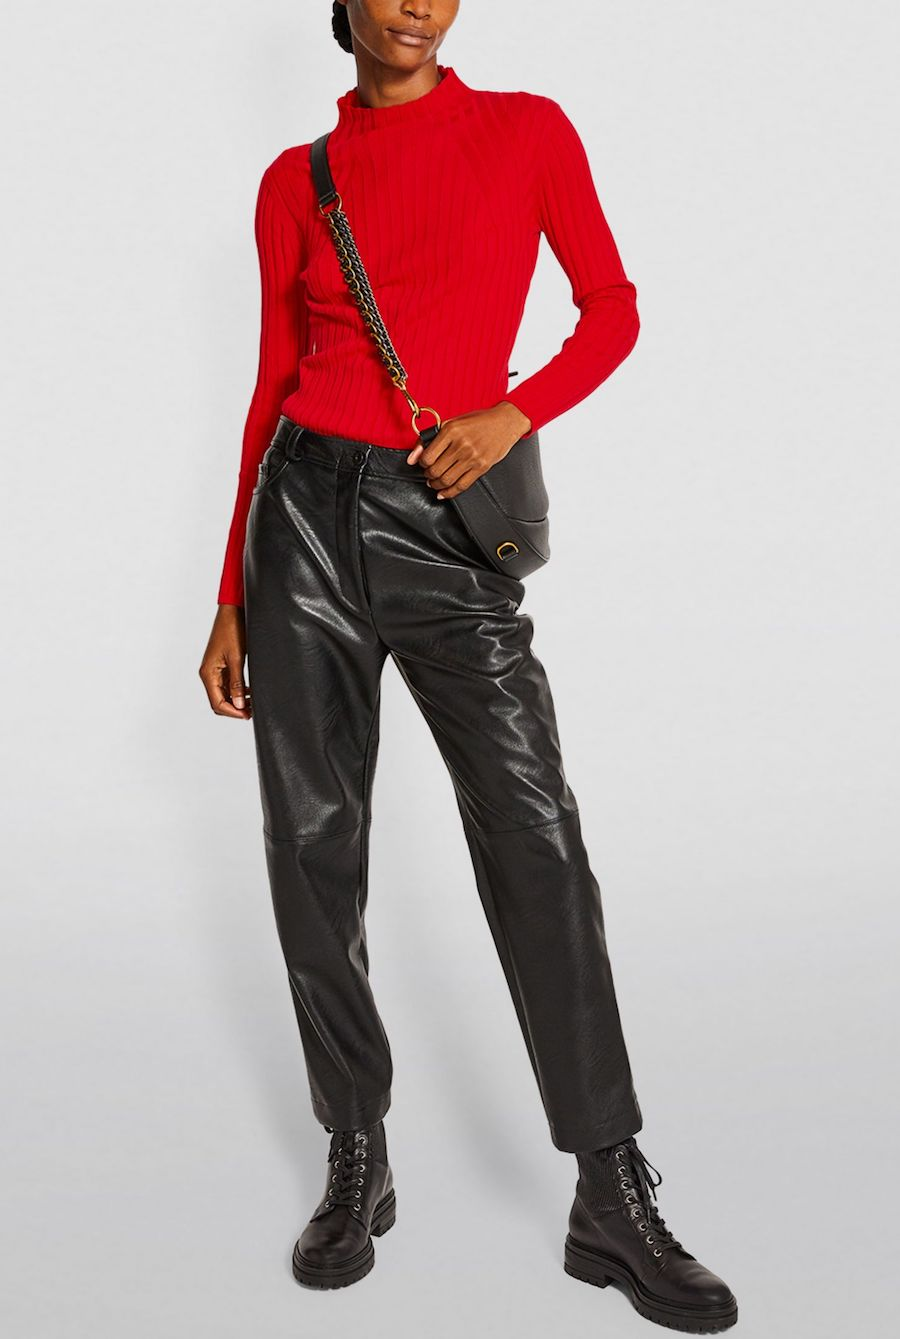 French Fashion Clothing Brand Claudie Pierlot French Red Sweater Parisian Style Paris Chic Style